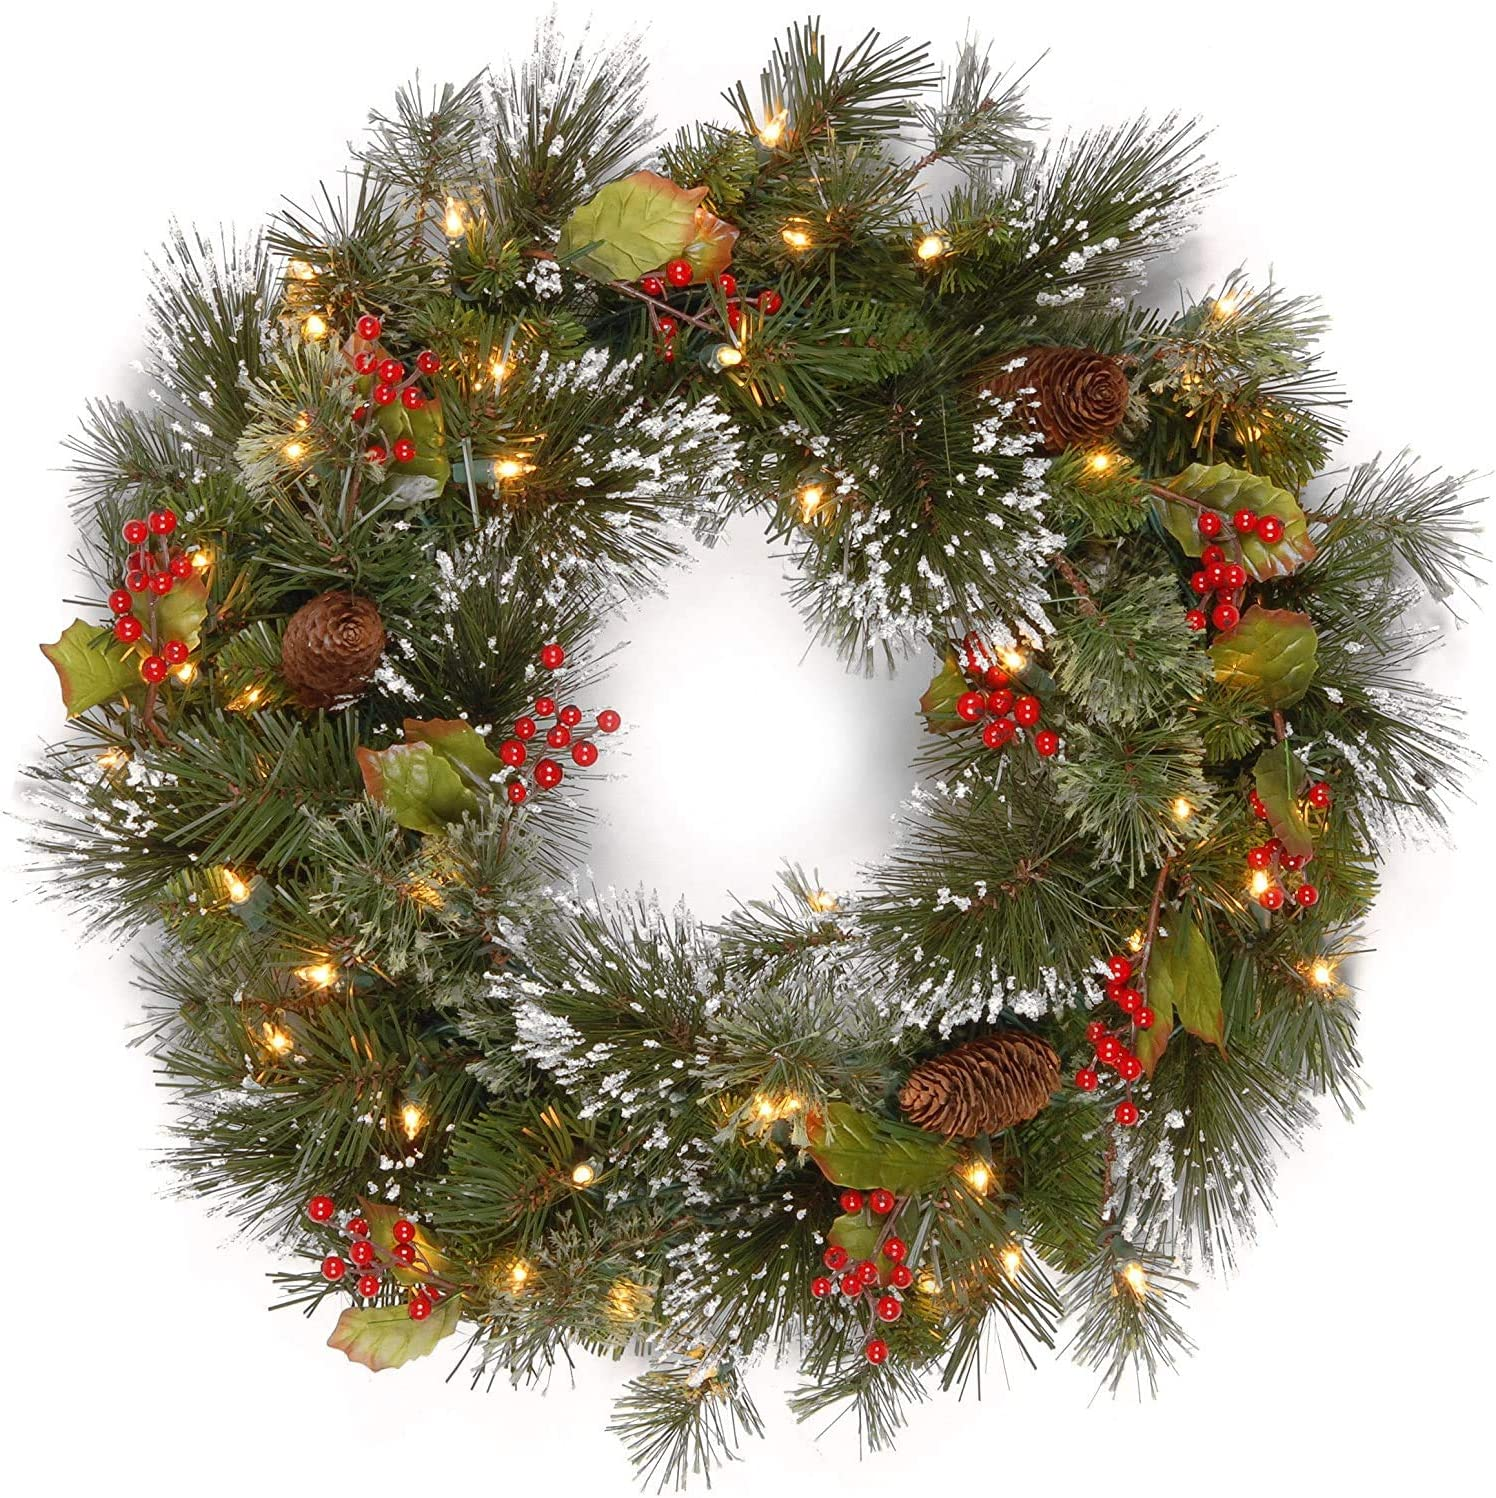 National Tree Company Pre-lit Artificial Christmas Wreath| Flocked with Mixed Decorations and Pre-strung White LED Lights | Wintry Pine - 24 inch